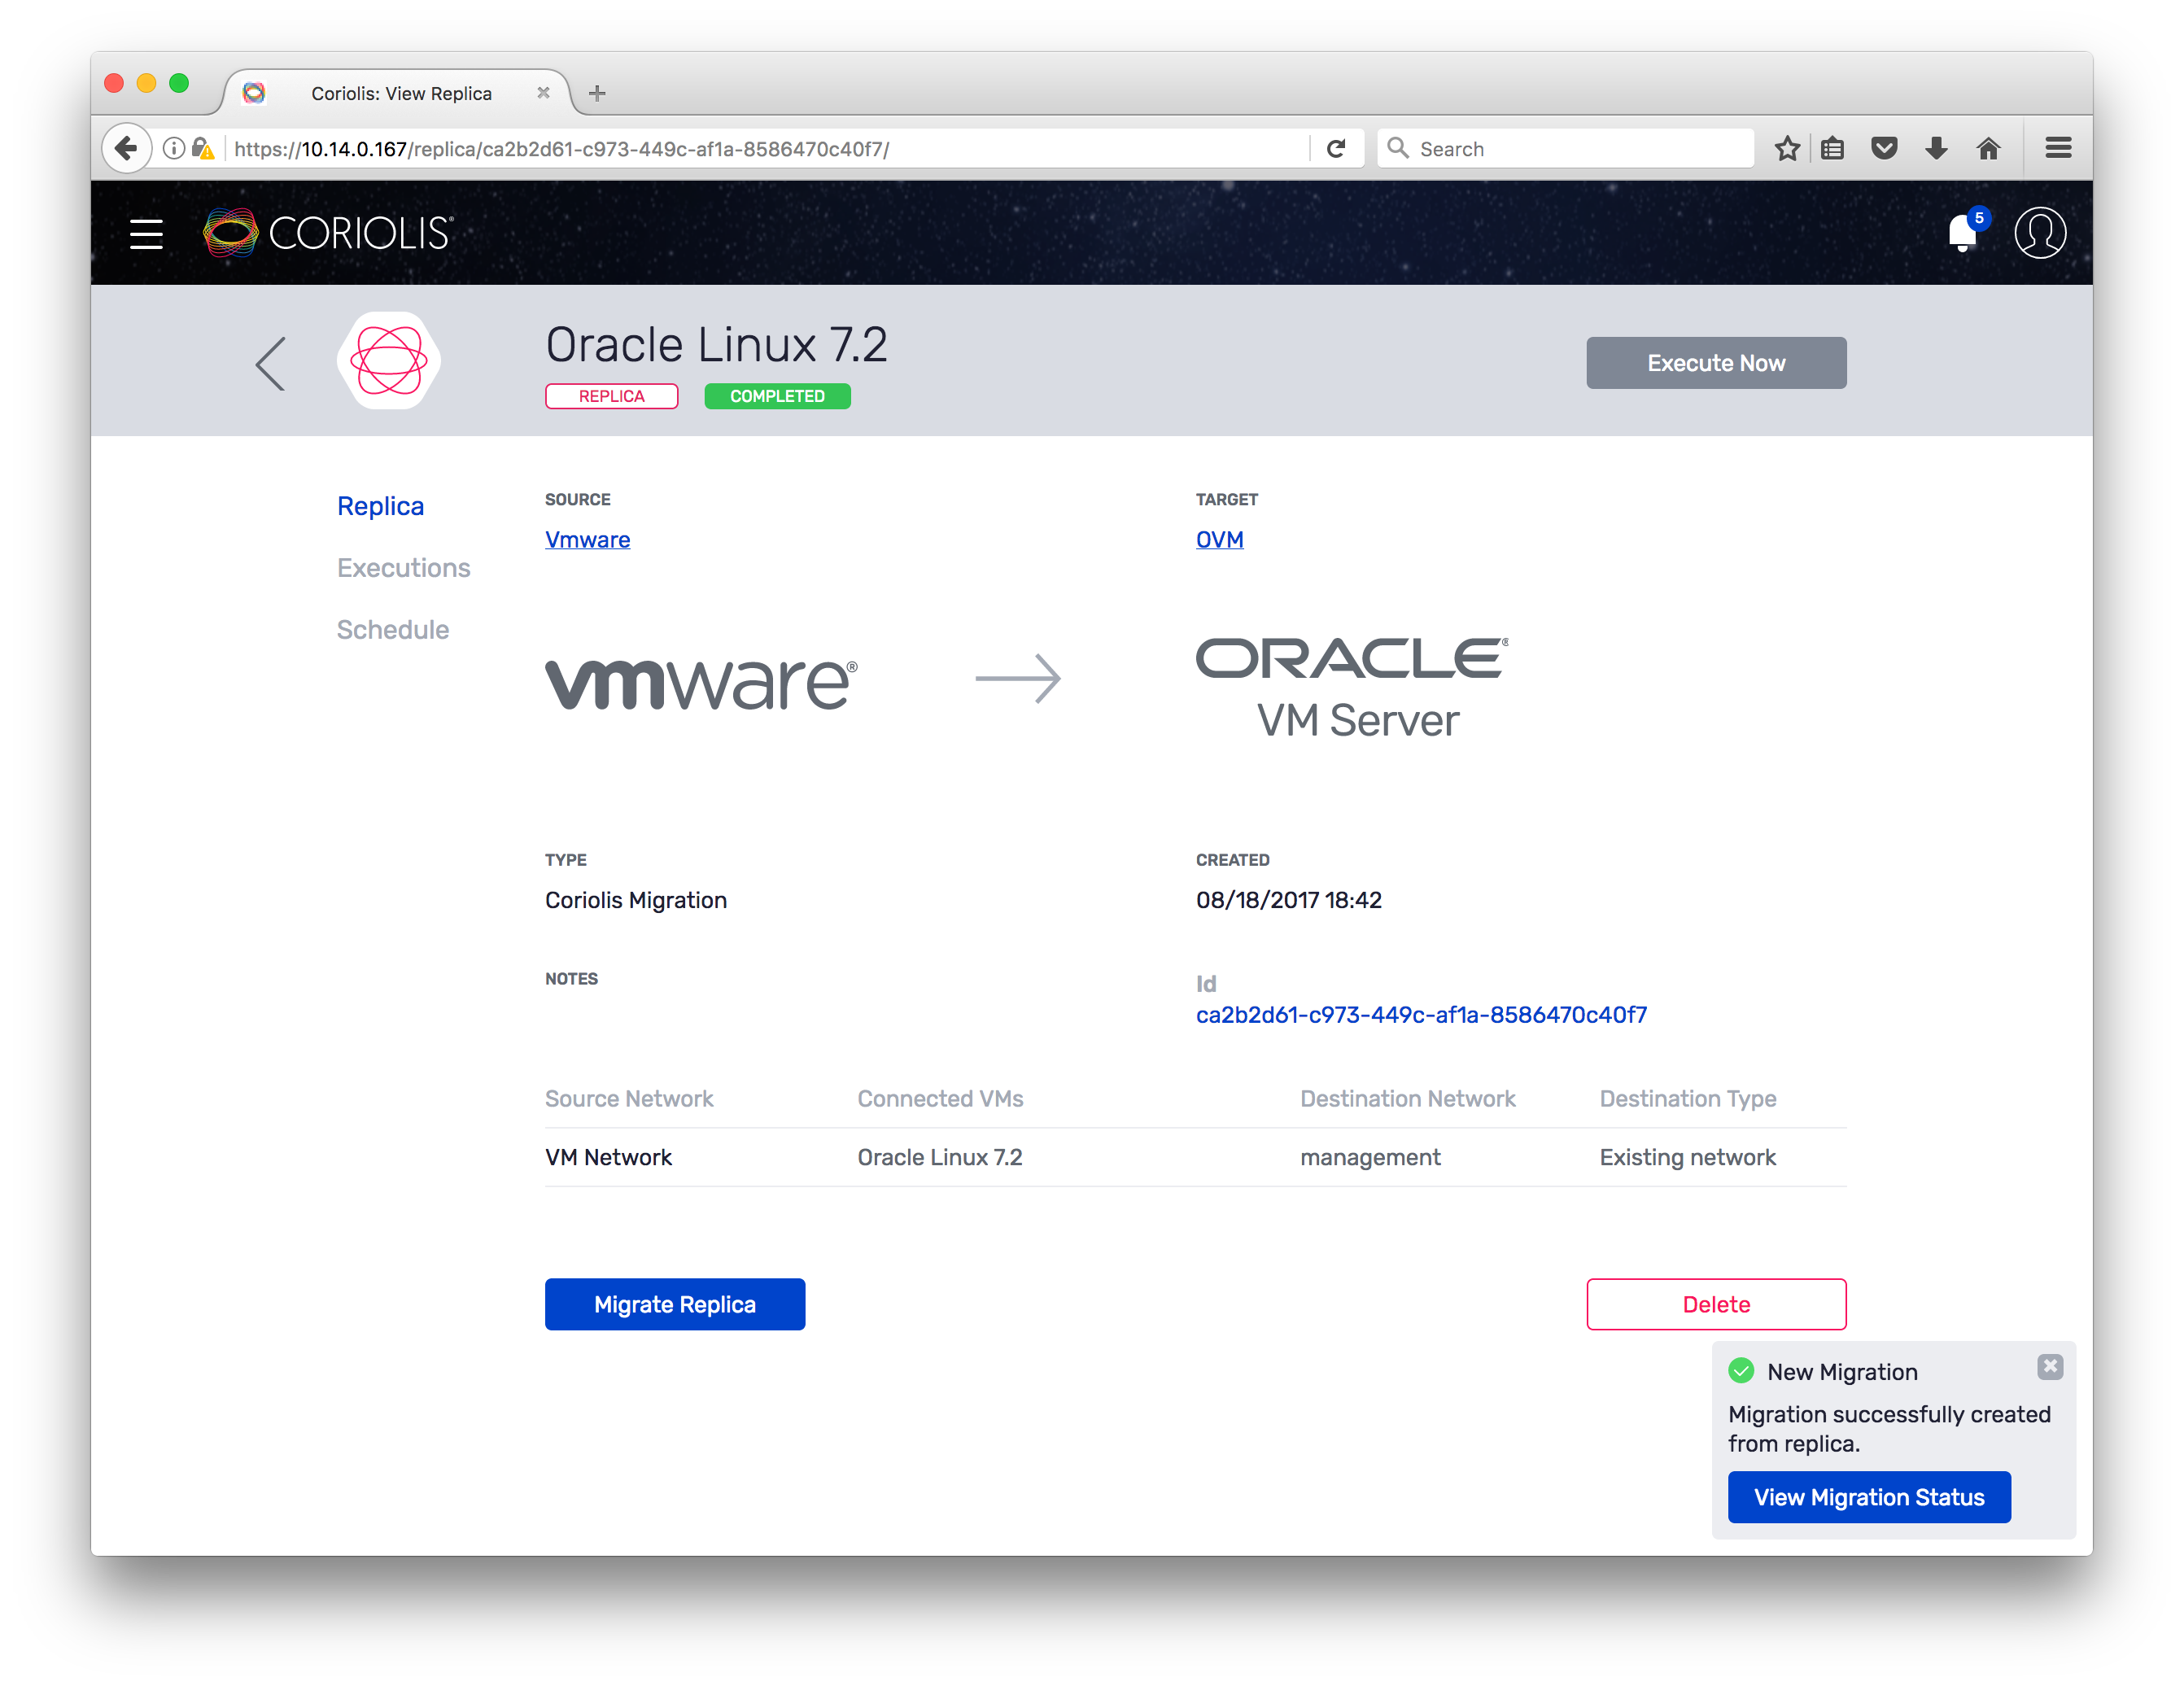 Coriolis - How to migrate VMs from VMware to Oracle VM using the Web